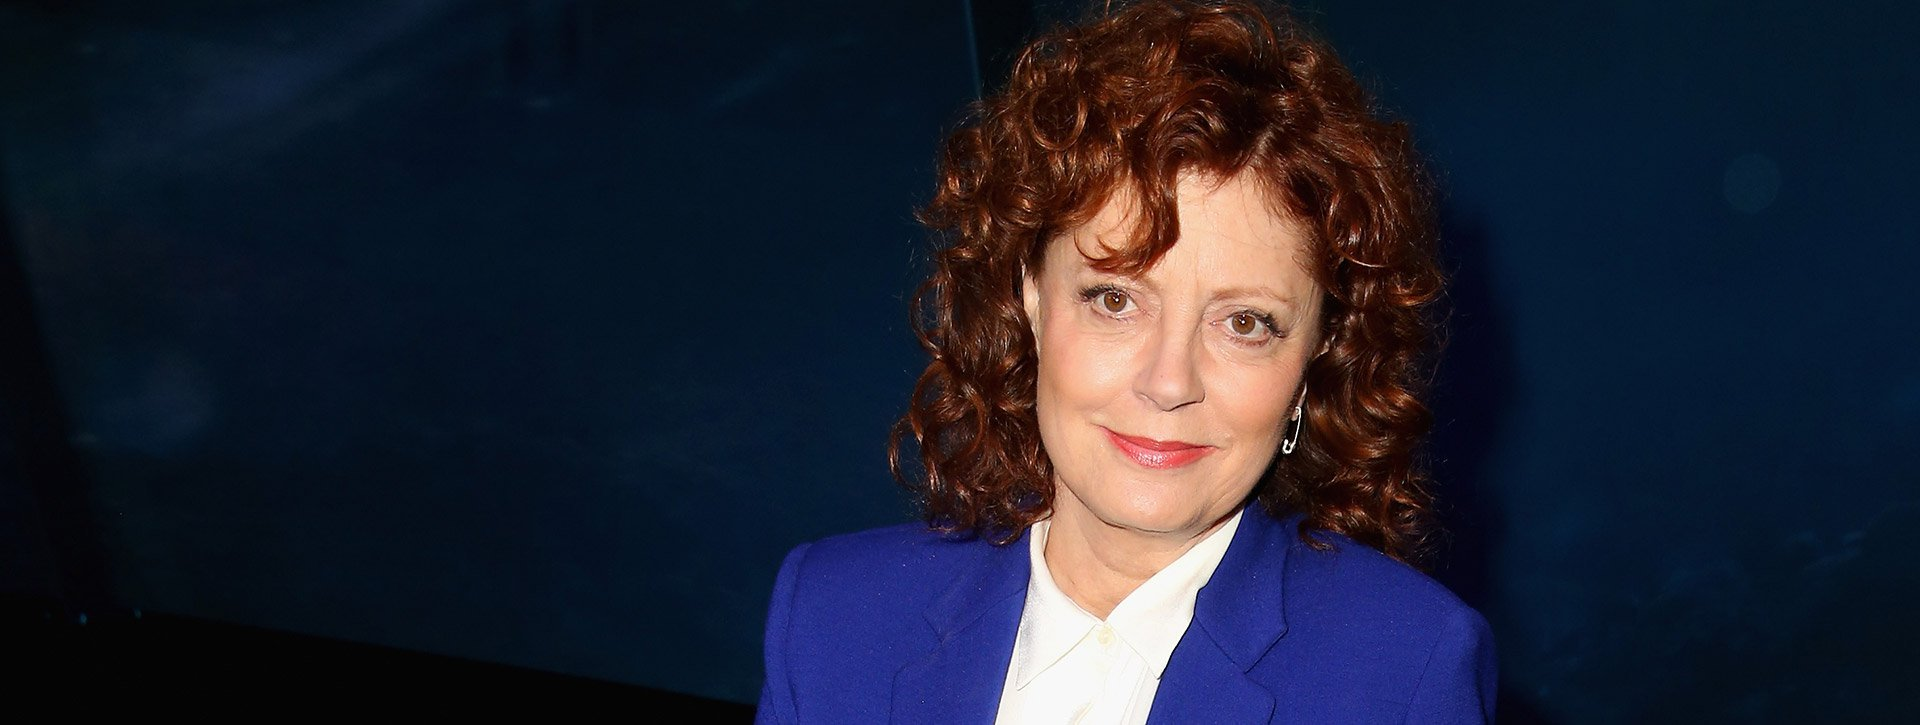 5 Reasons Why Susan Sarandon Is the Coolest Woman in Hollywood